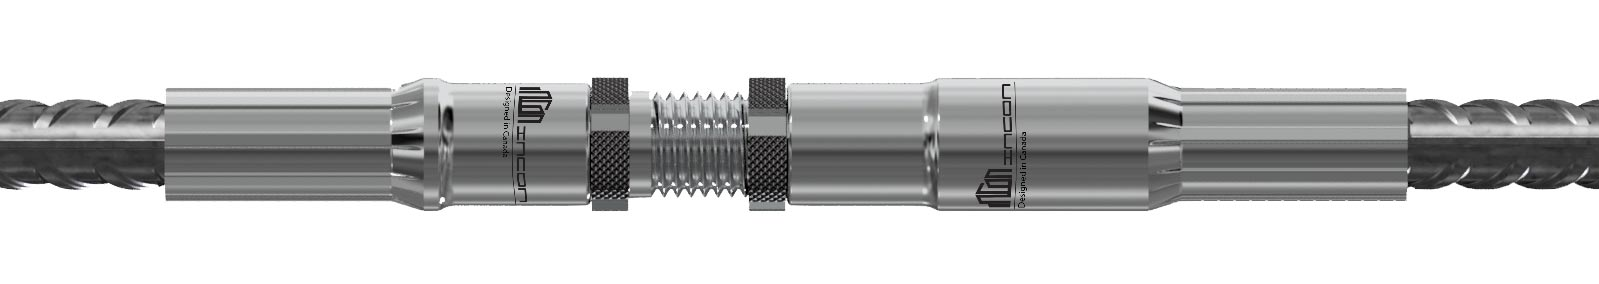 STEP 4 — ICP Position Coupler